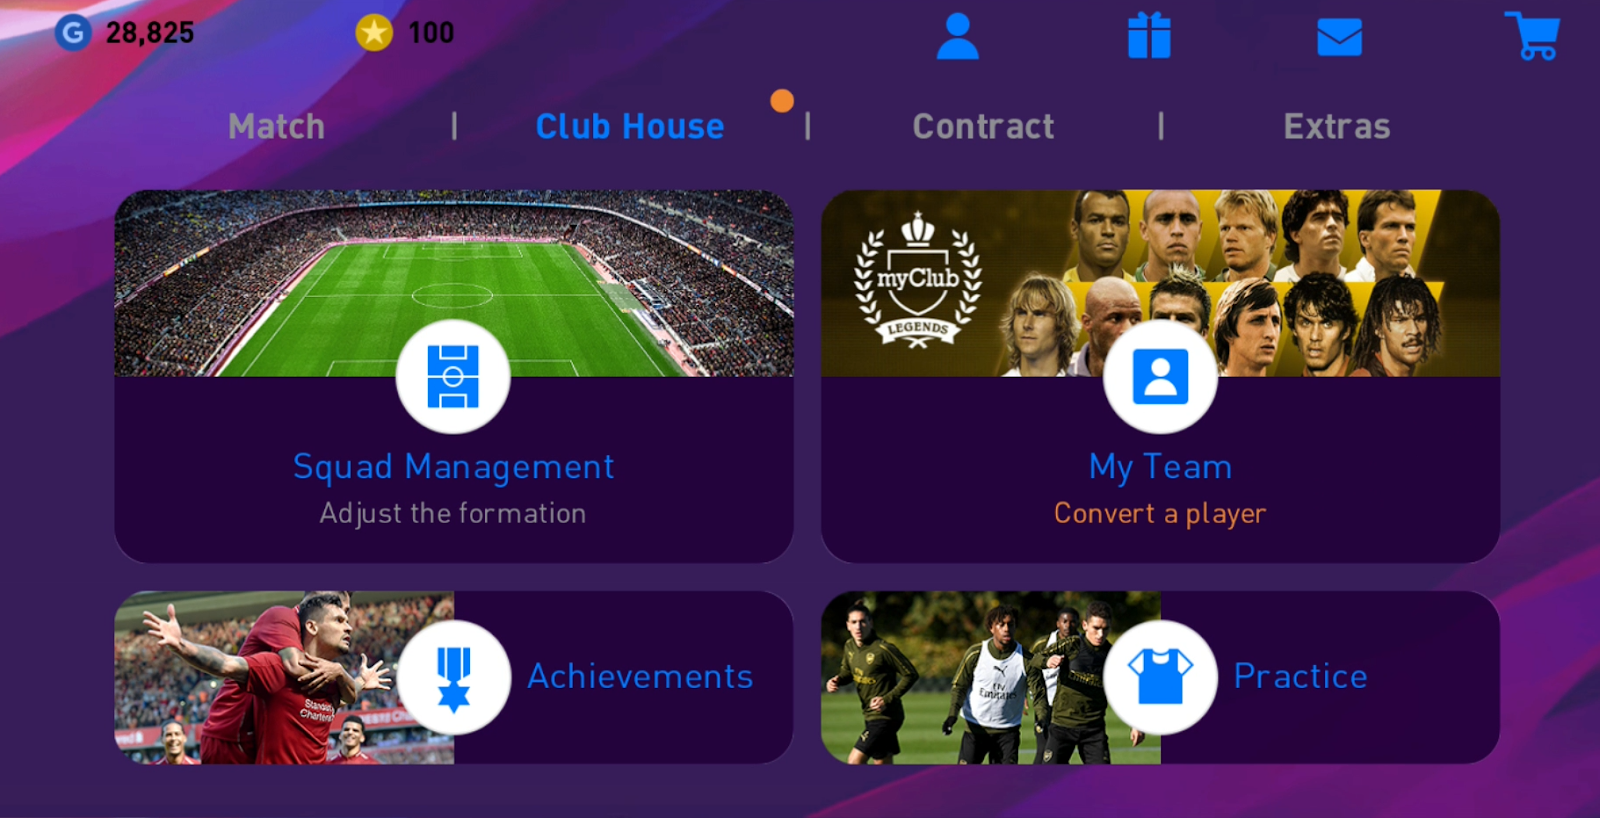 PES 2019 Mobile V3.3.1 MOD PES 2020 Android Offline Best Graphics New Kits 2020 & Transfers Update